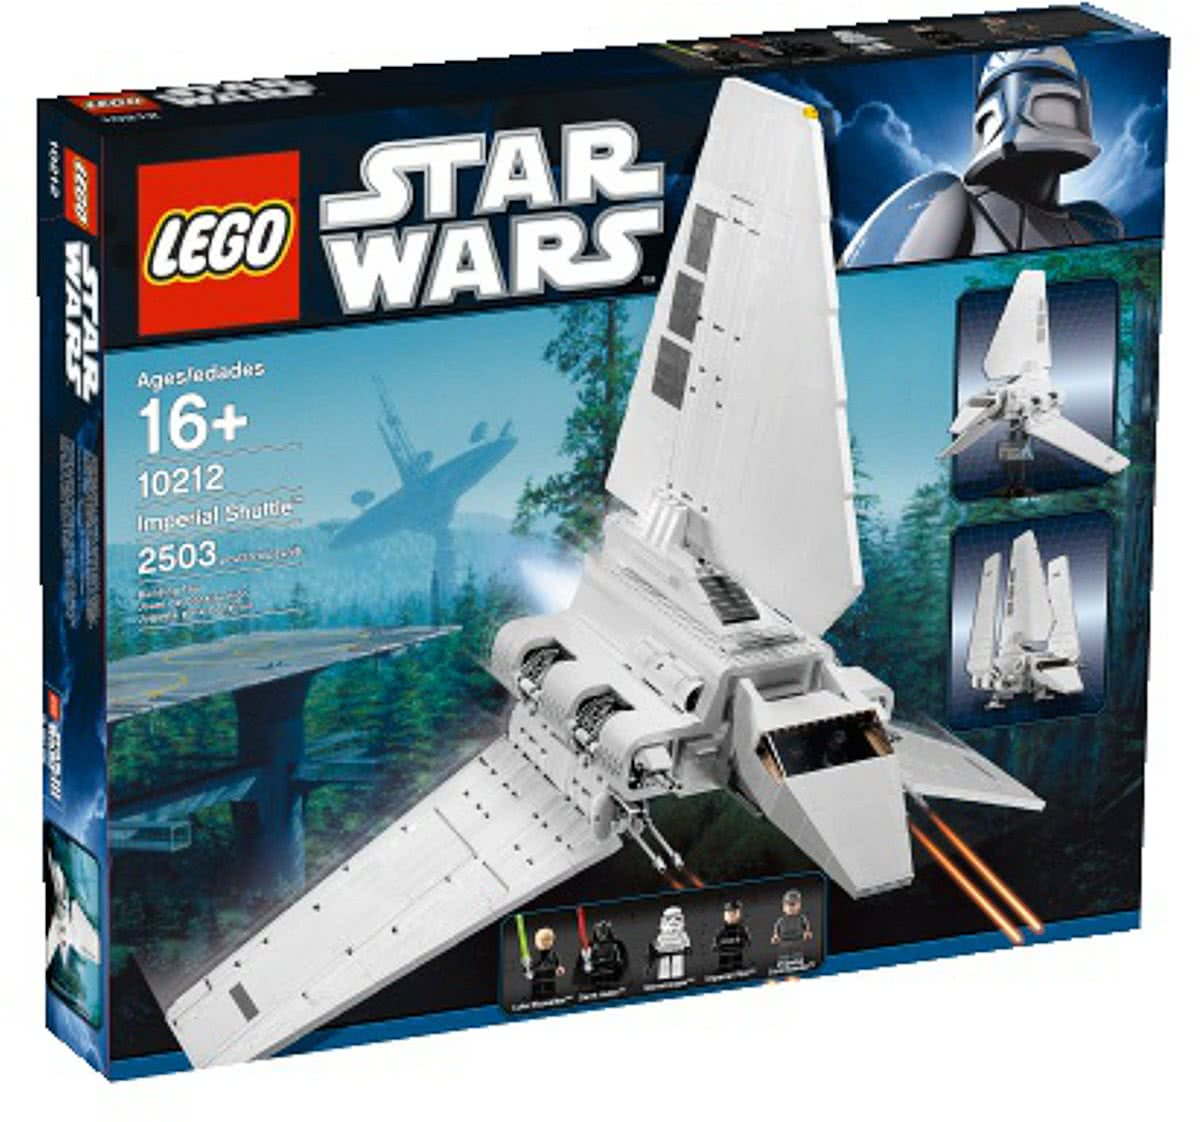 LEGO Star Wars Imperial Shuttle - 10212